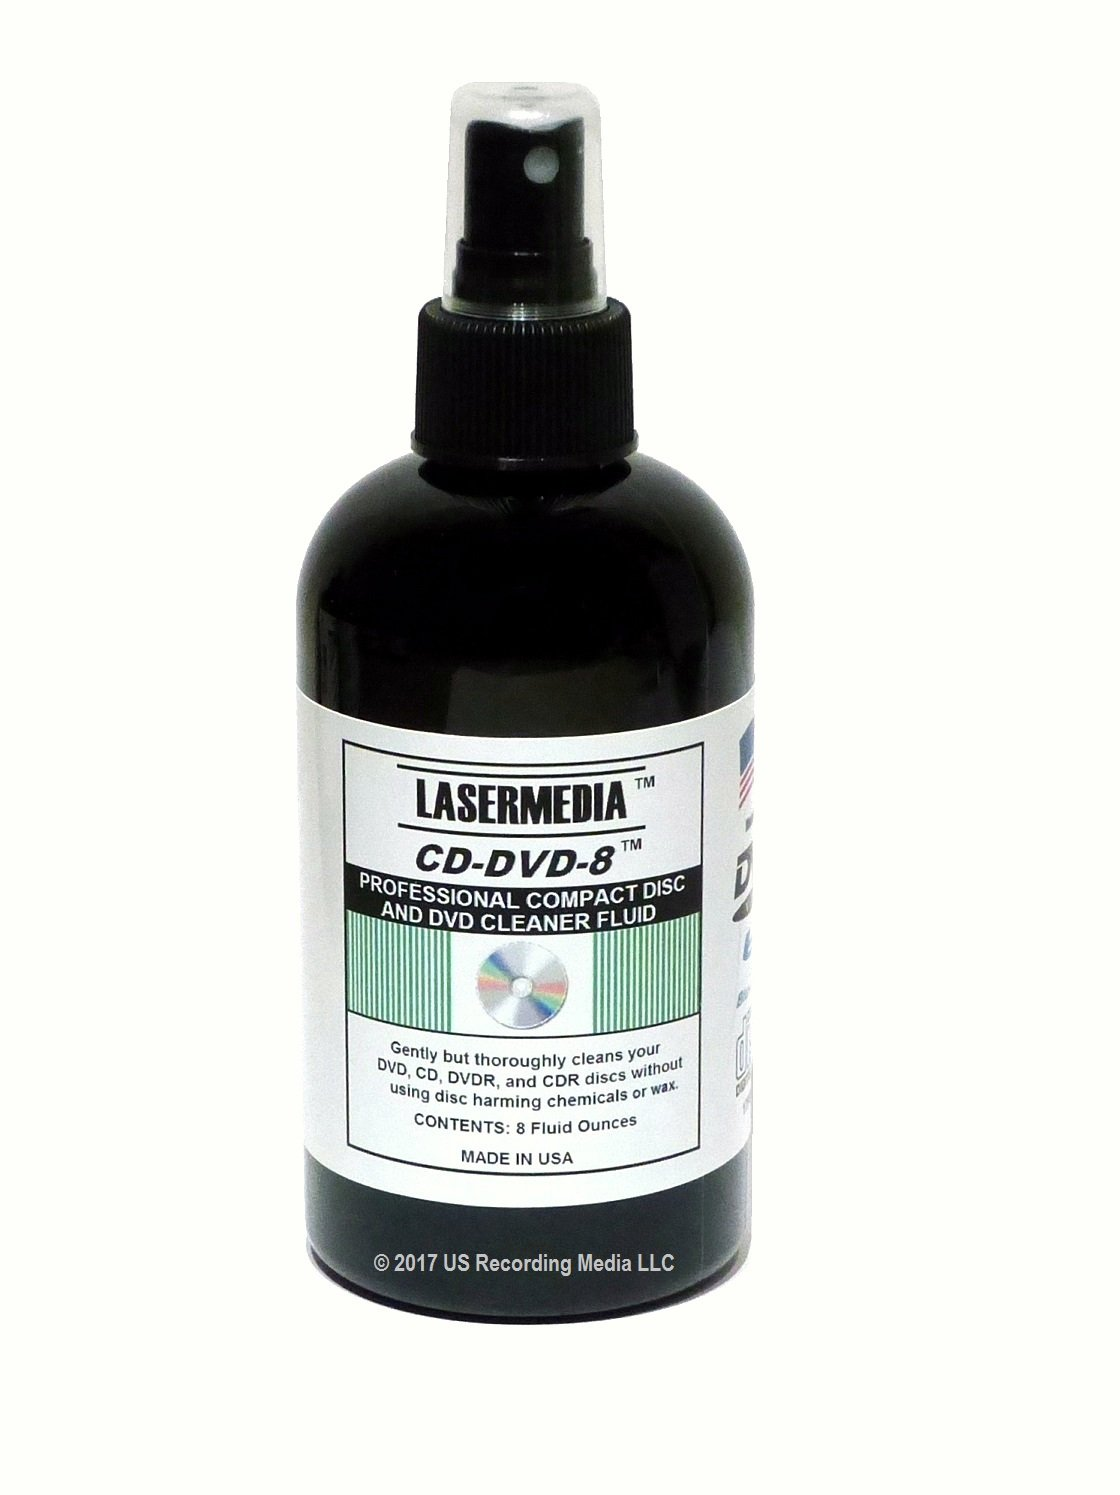 TME Lasermedia CD-DVD-8 Compact Disc/CDR and DVD-DVD-R Cleaner 8 Ounce Spray Bottle